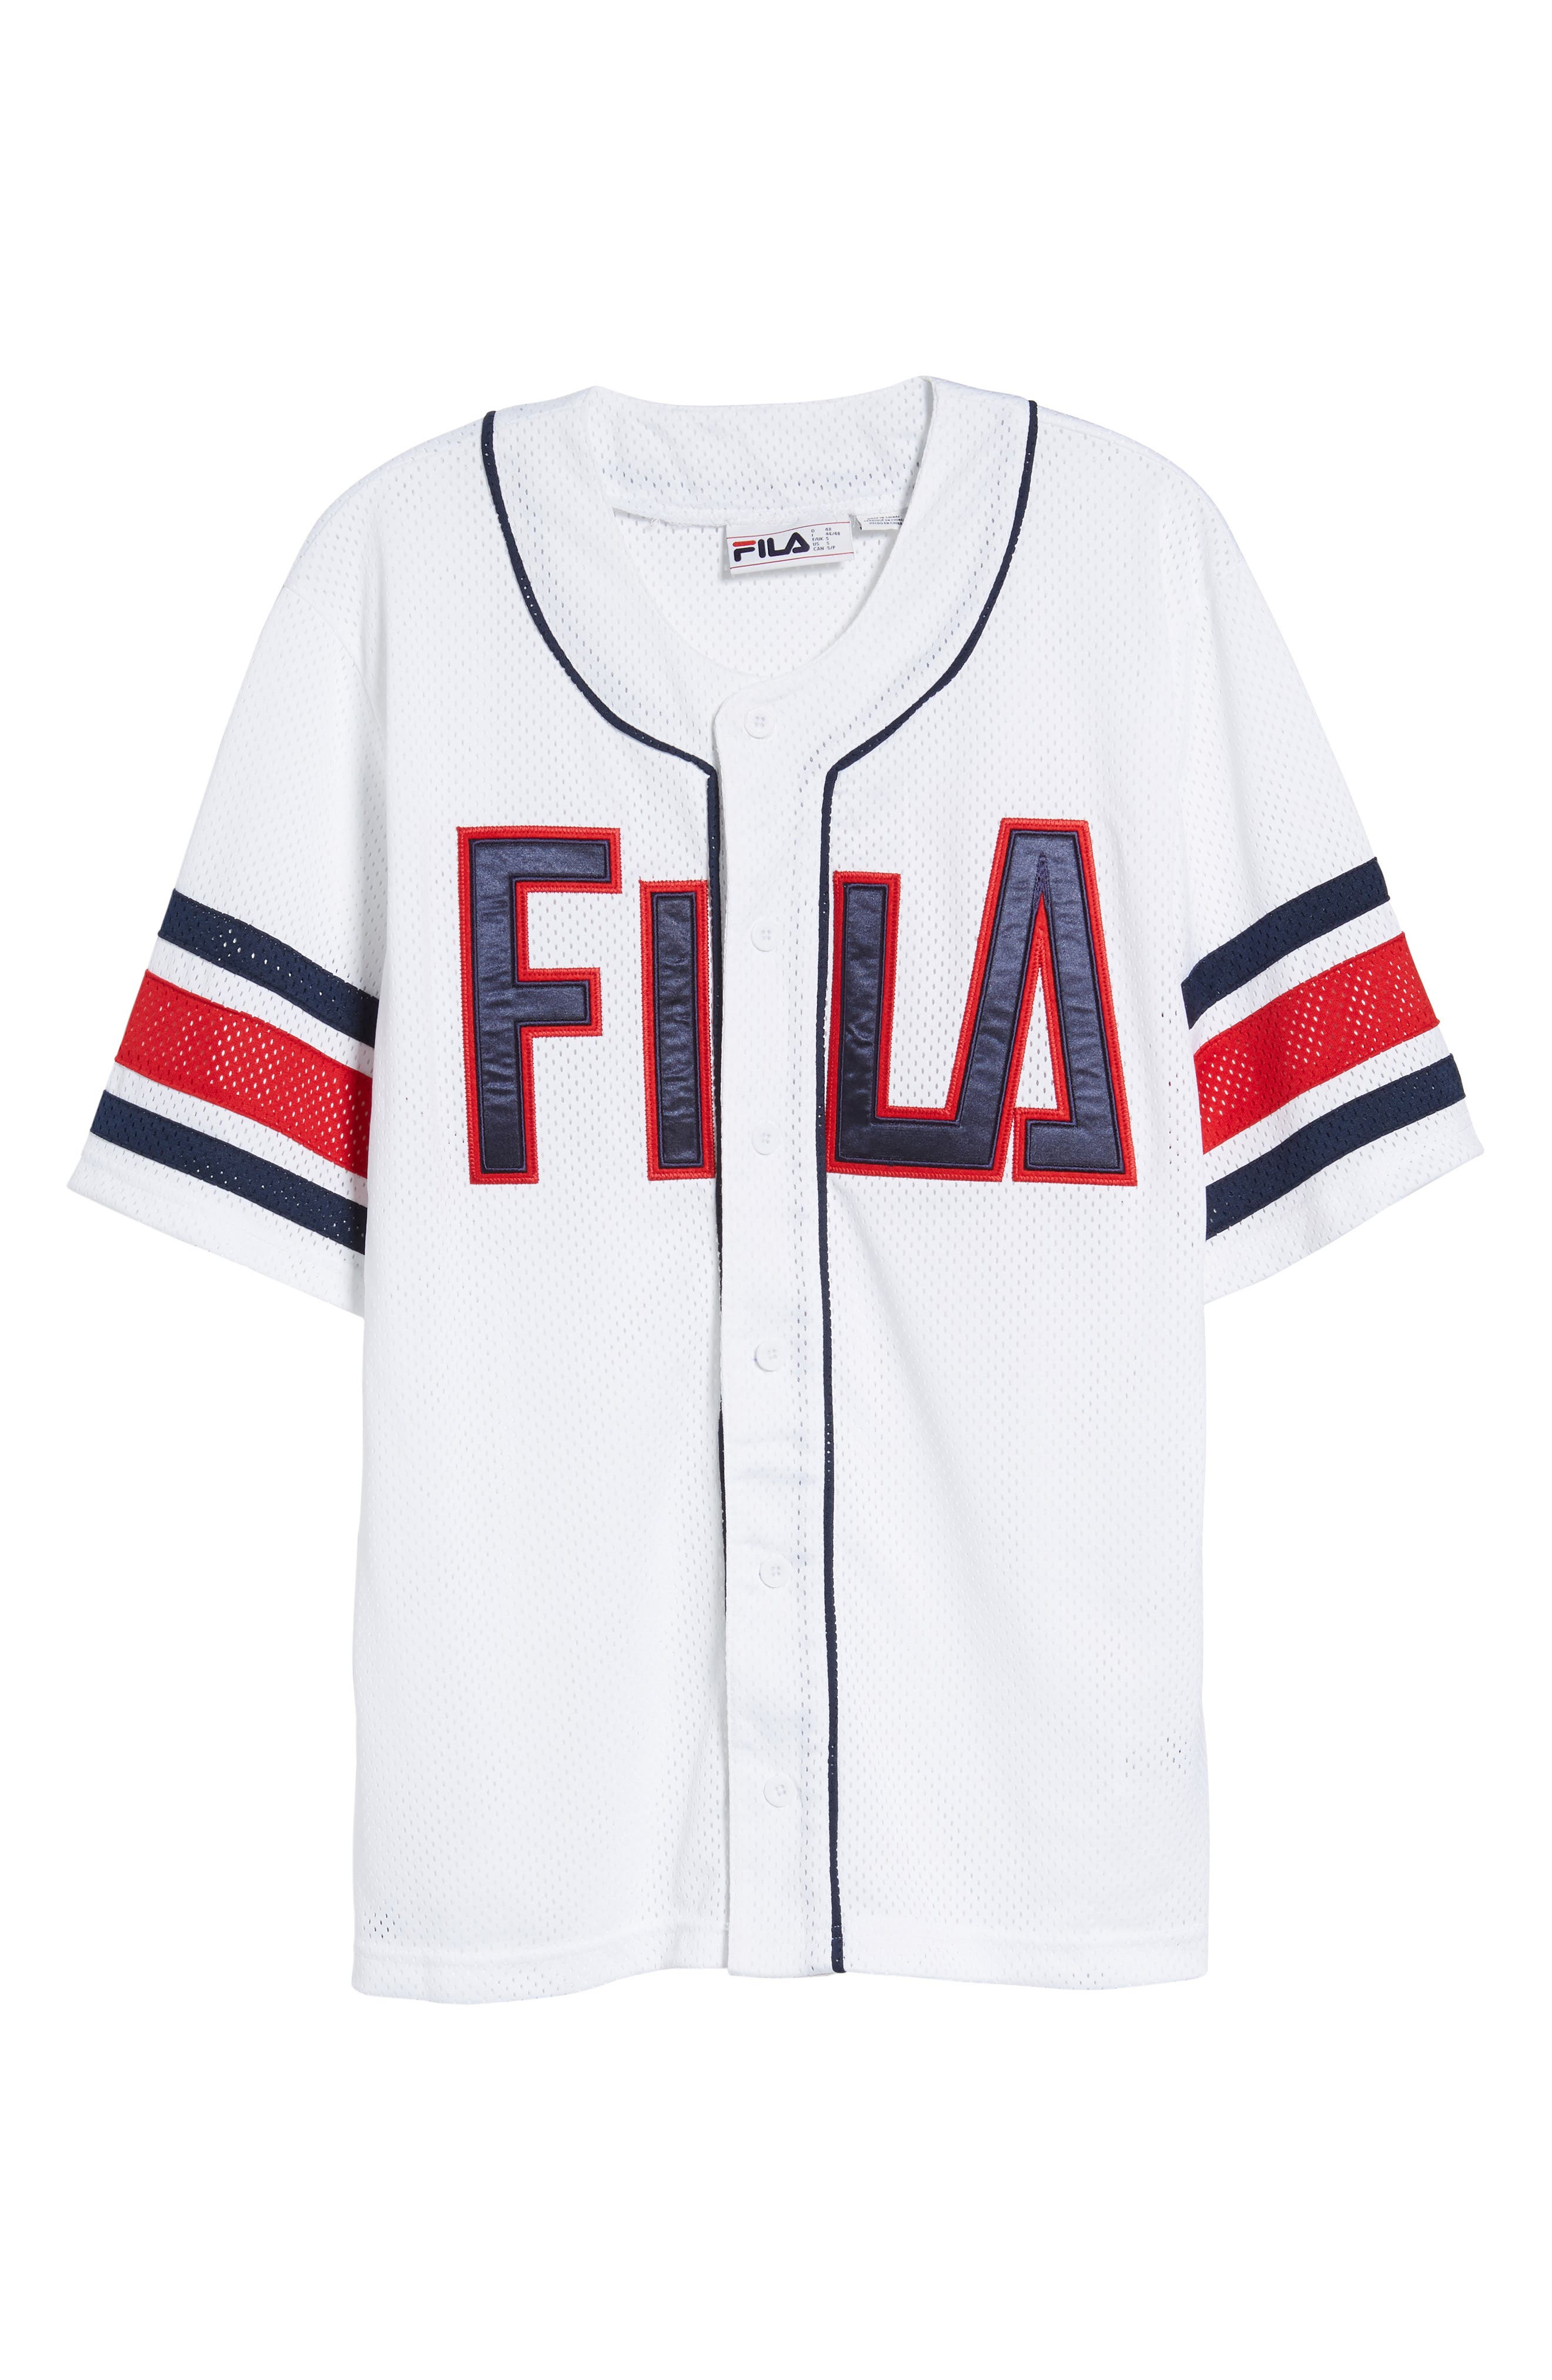 Kyler Baseball Jersey,                             Alternate thumbnail 6, color,                             White/ Peacoat/ Chinese Red